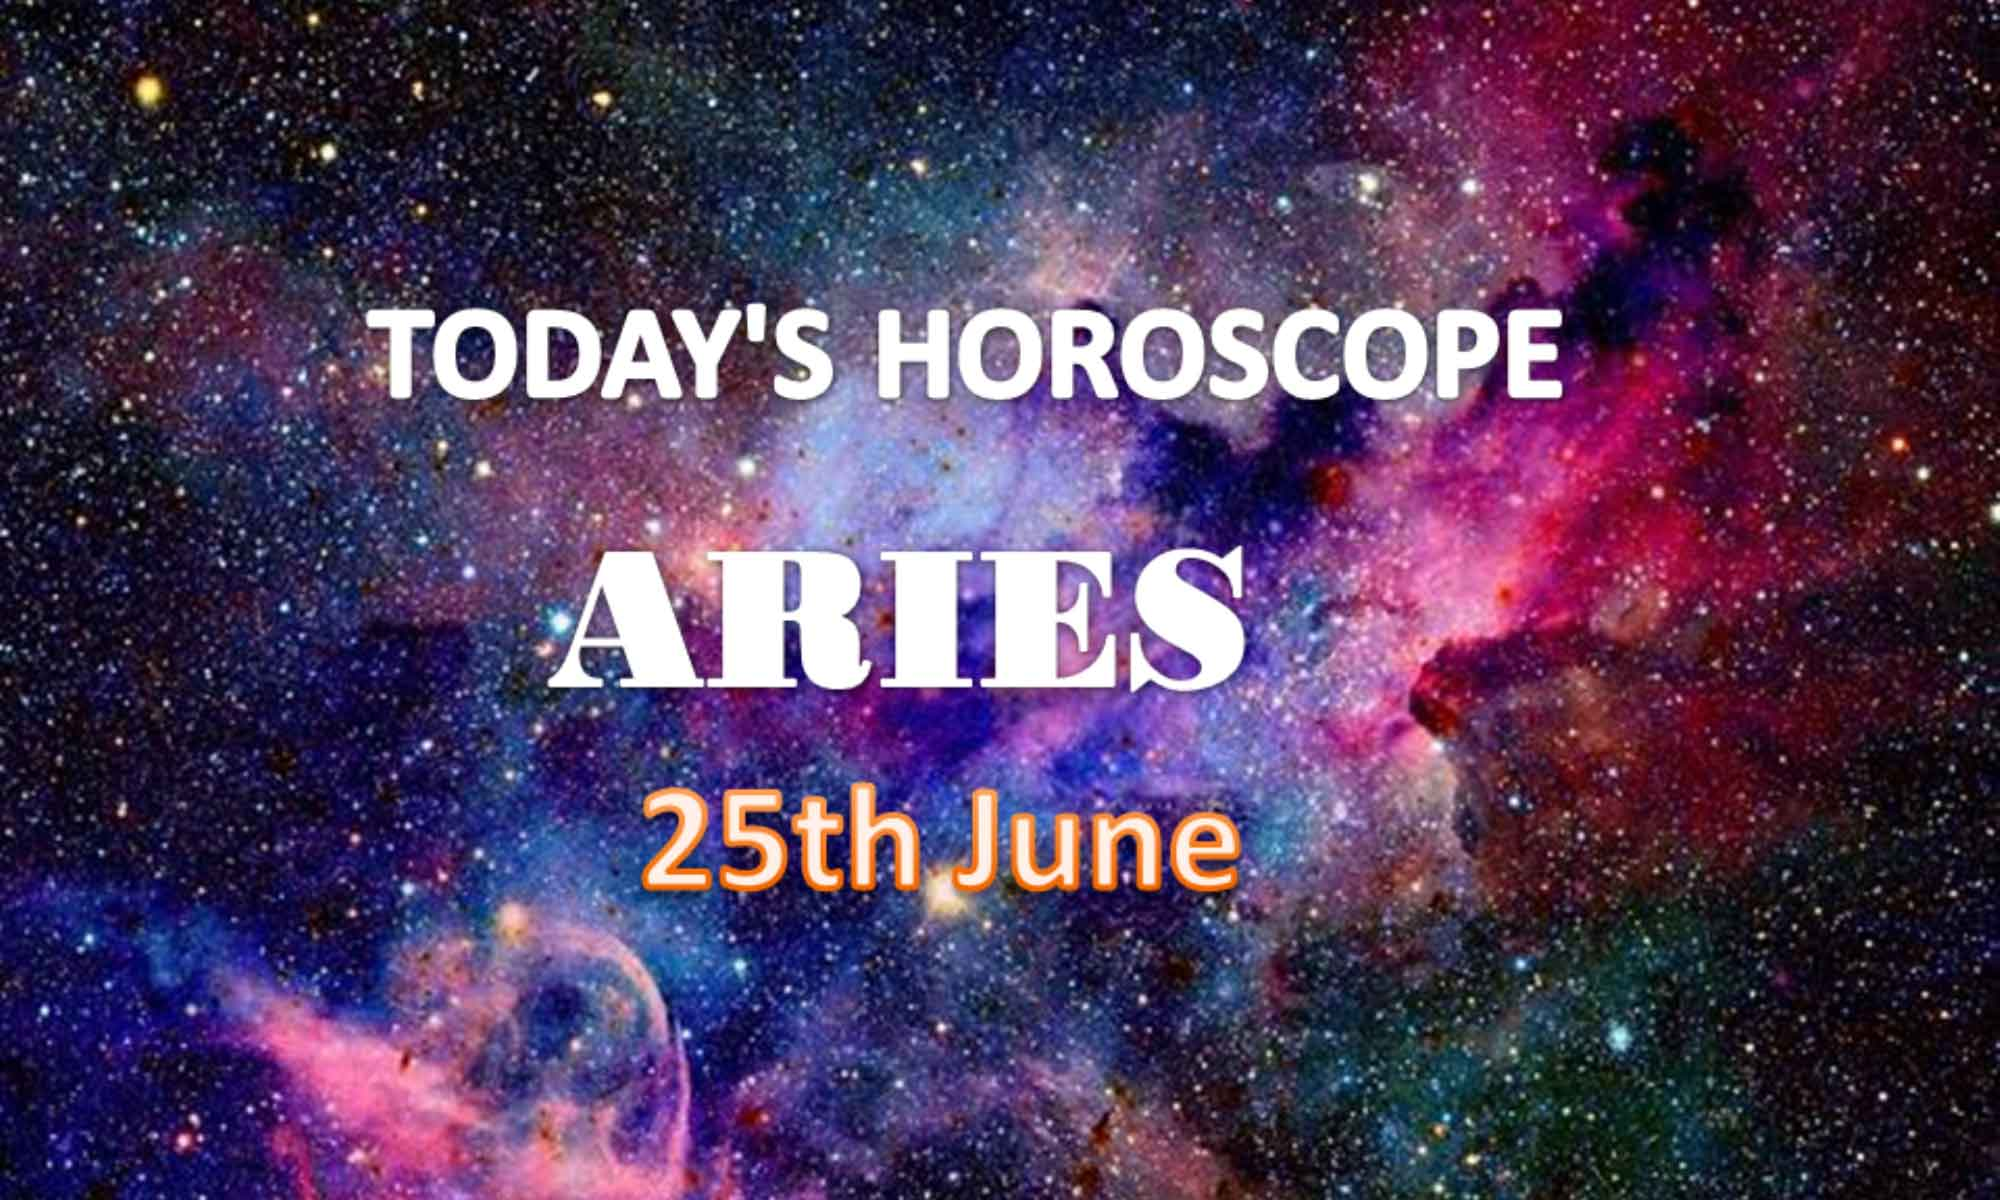 aries daily horoscope for today friday june 25th 2021